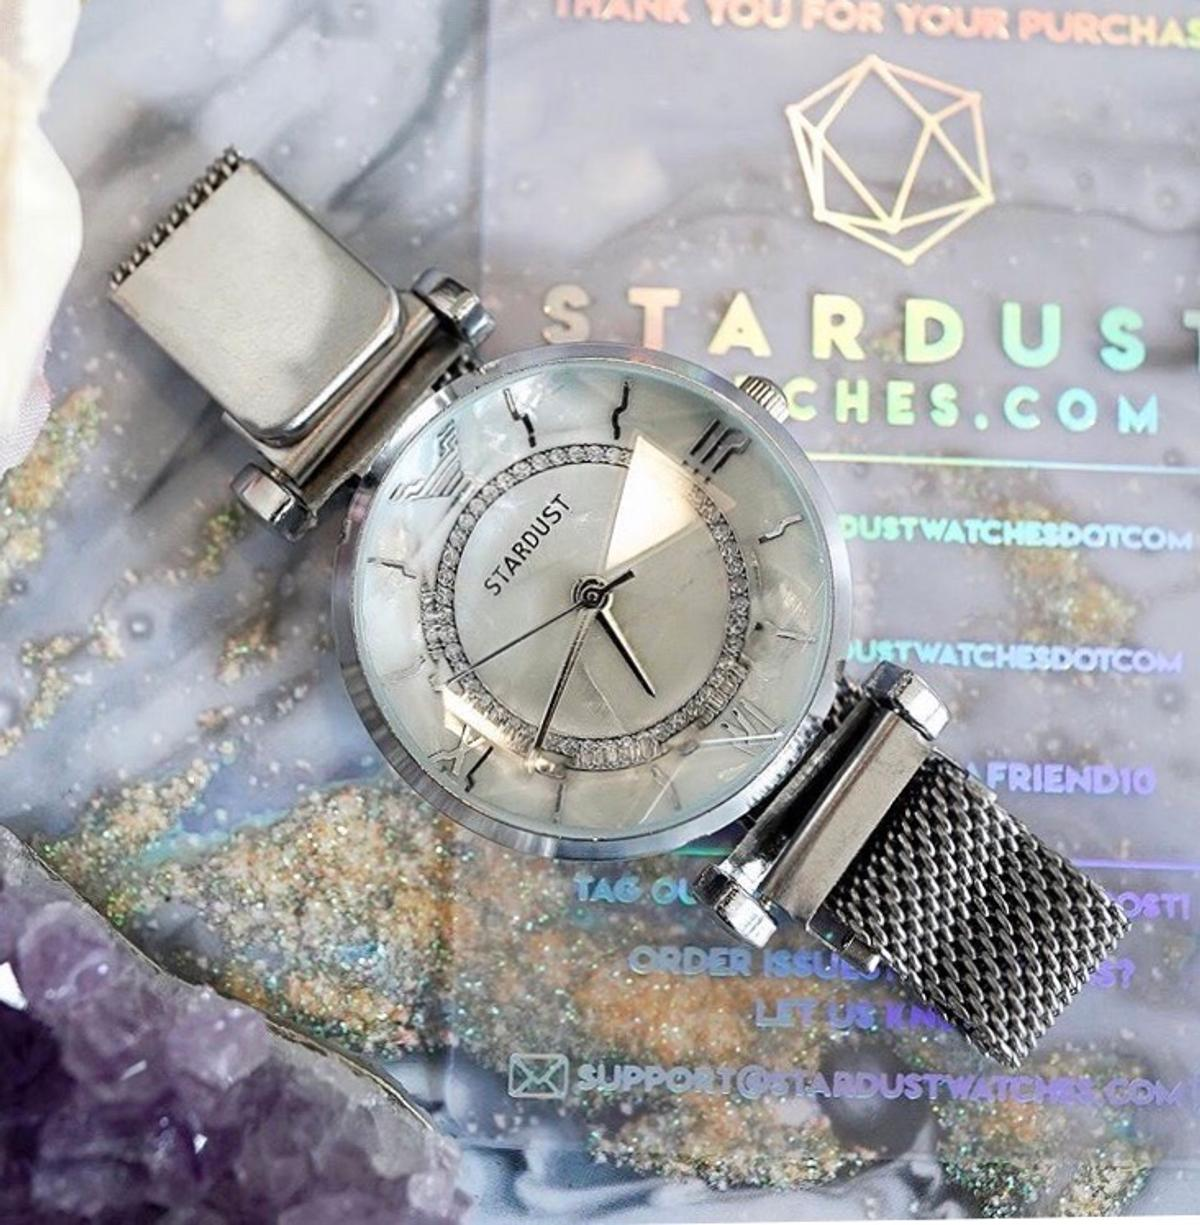 ‼️THE NEW SUMMERDUST IS HERE‼️  Turn headsandgrab complimentswith ourone-of-a-kind Stardust™ watch. Its unique,beautifuldesign makes it great forany occasionand tosuit any outfit. Not only does it look beautiful; it's also built to be lightweight and easy to wear. Comes in a choice of 3 colour dial faces,and 3 and 3 colour bands 😘 Definitely a accessory not to miss‼️ #HURRY!!! Only 12 left in stock 😱🙈  use my code AMBSDRHZKXQC to get 10% off your entire purchase at Stardust.com